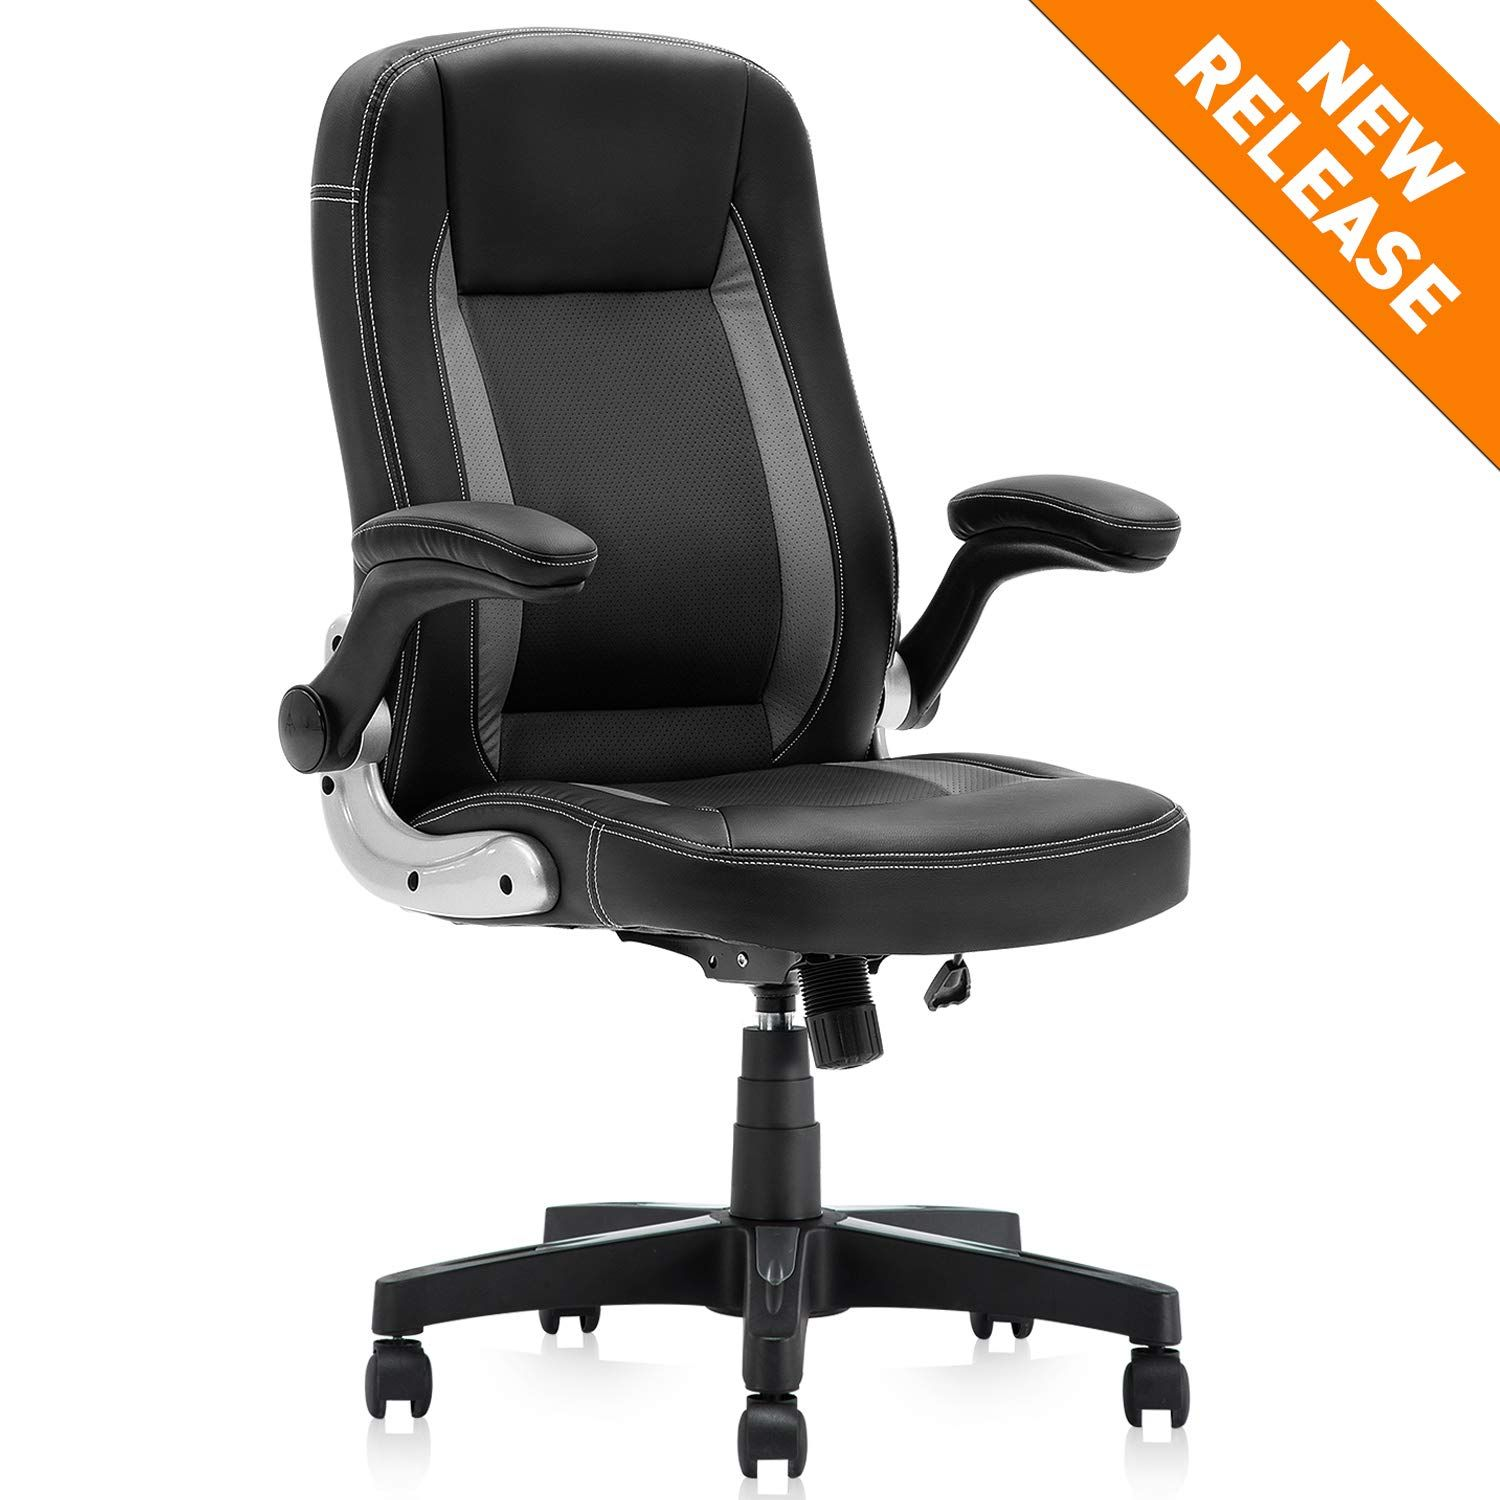 B2c2b leather executive office chair computer desk chair